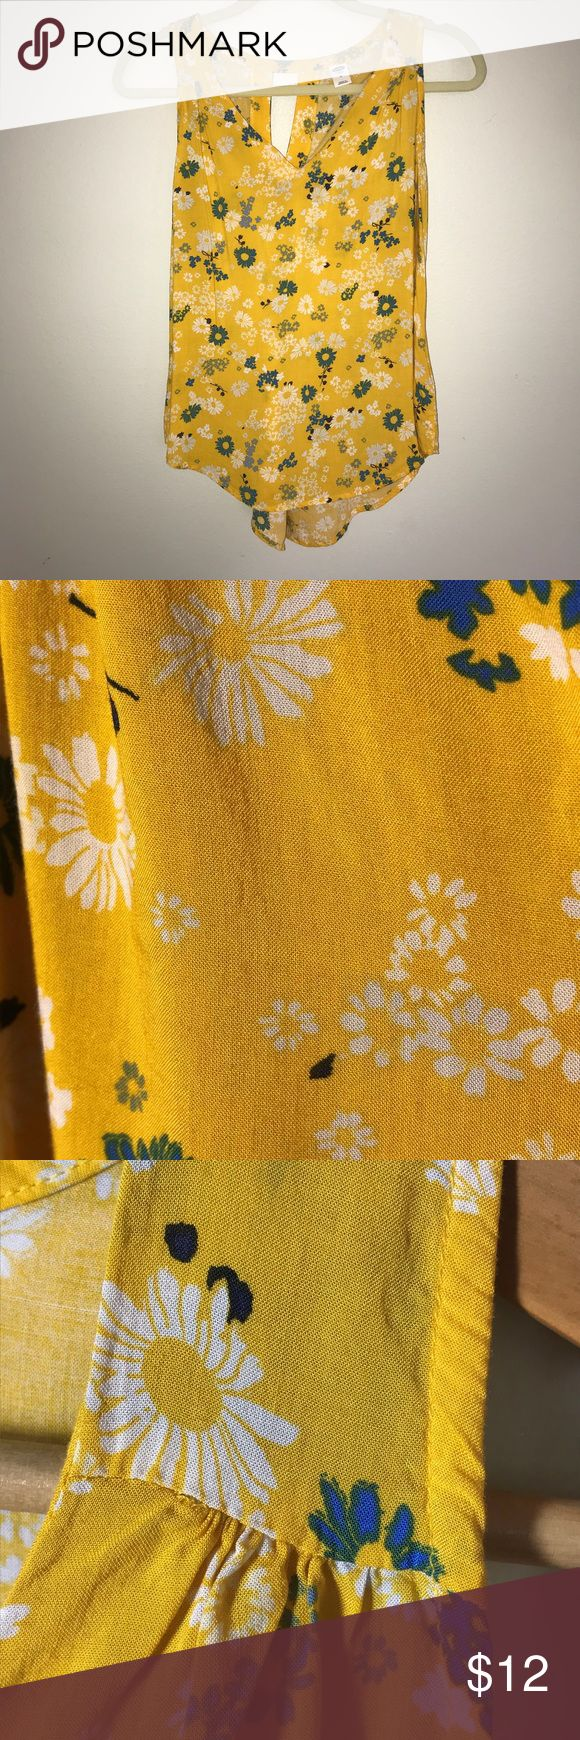 Yellow Flower Print Tank Cheery yellow tank with blue and white flower print. Perfect to jumpstart your spring wardrobe. Old Navy Tops Tank Tops